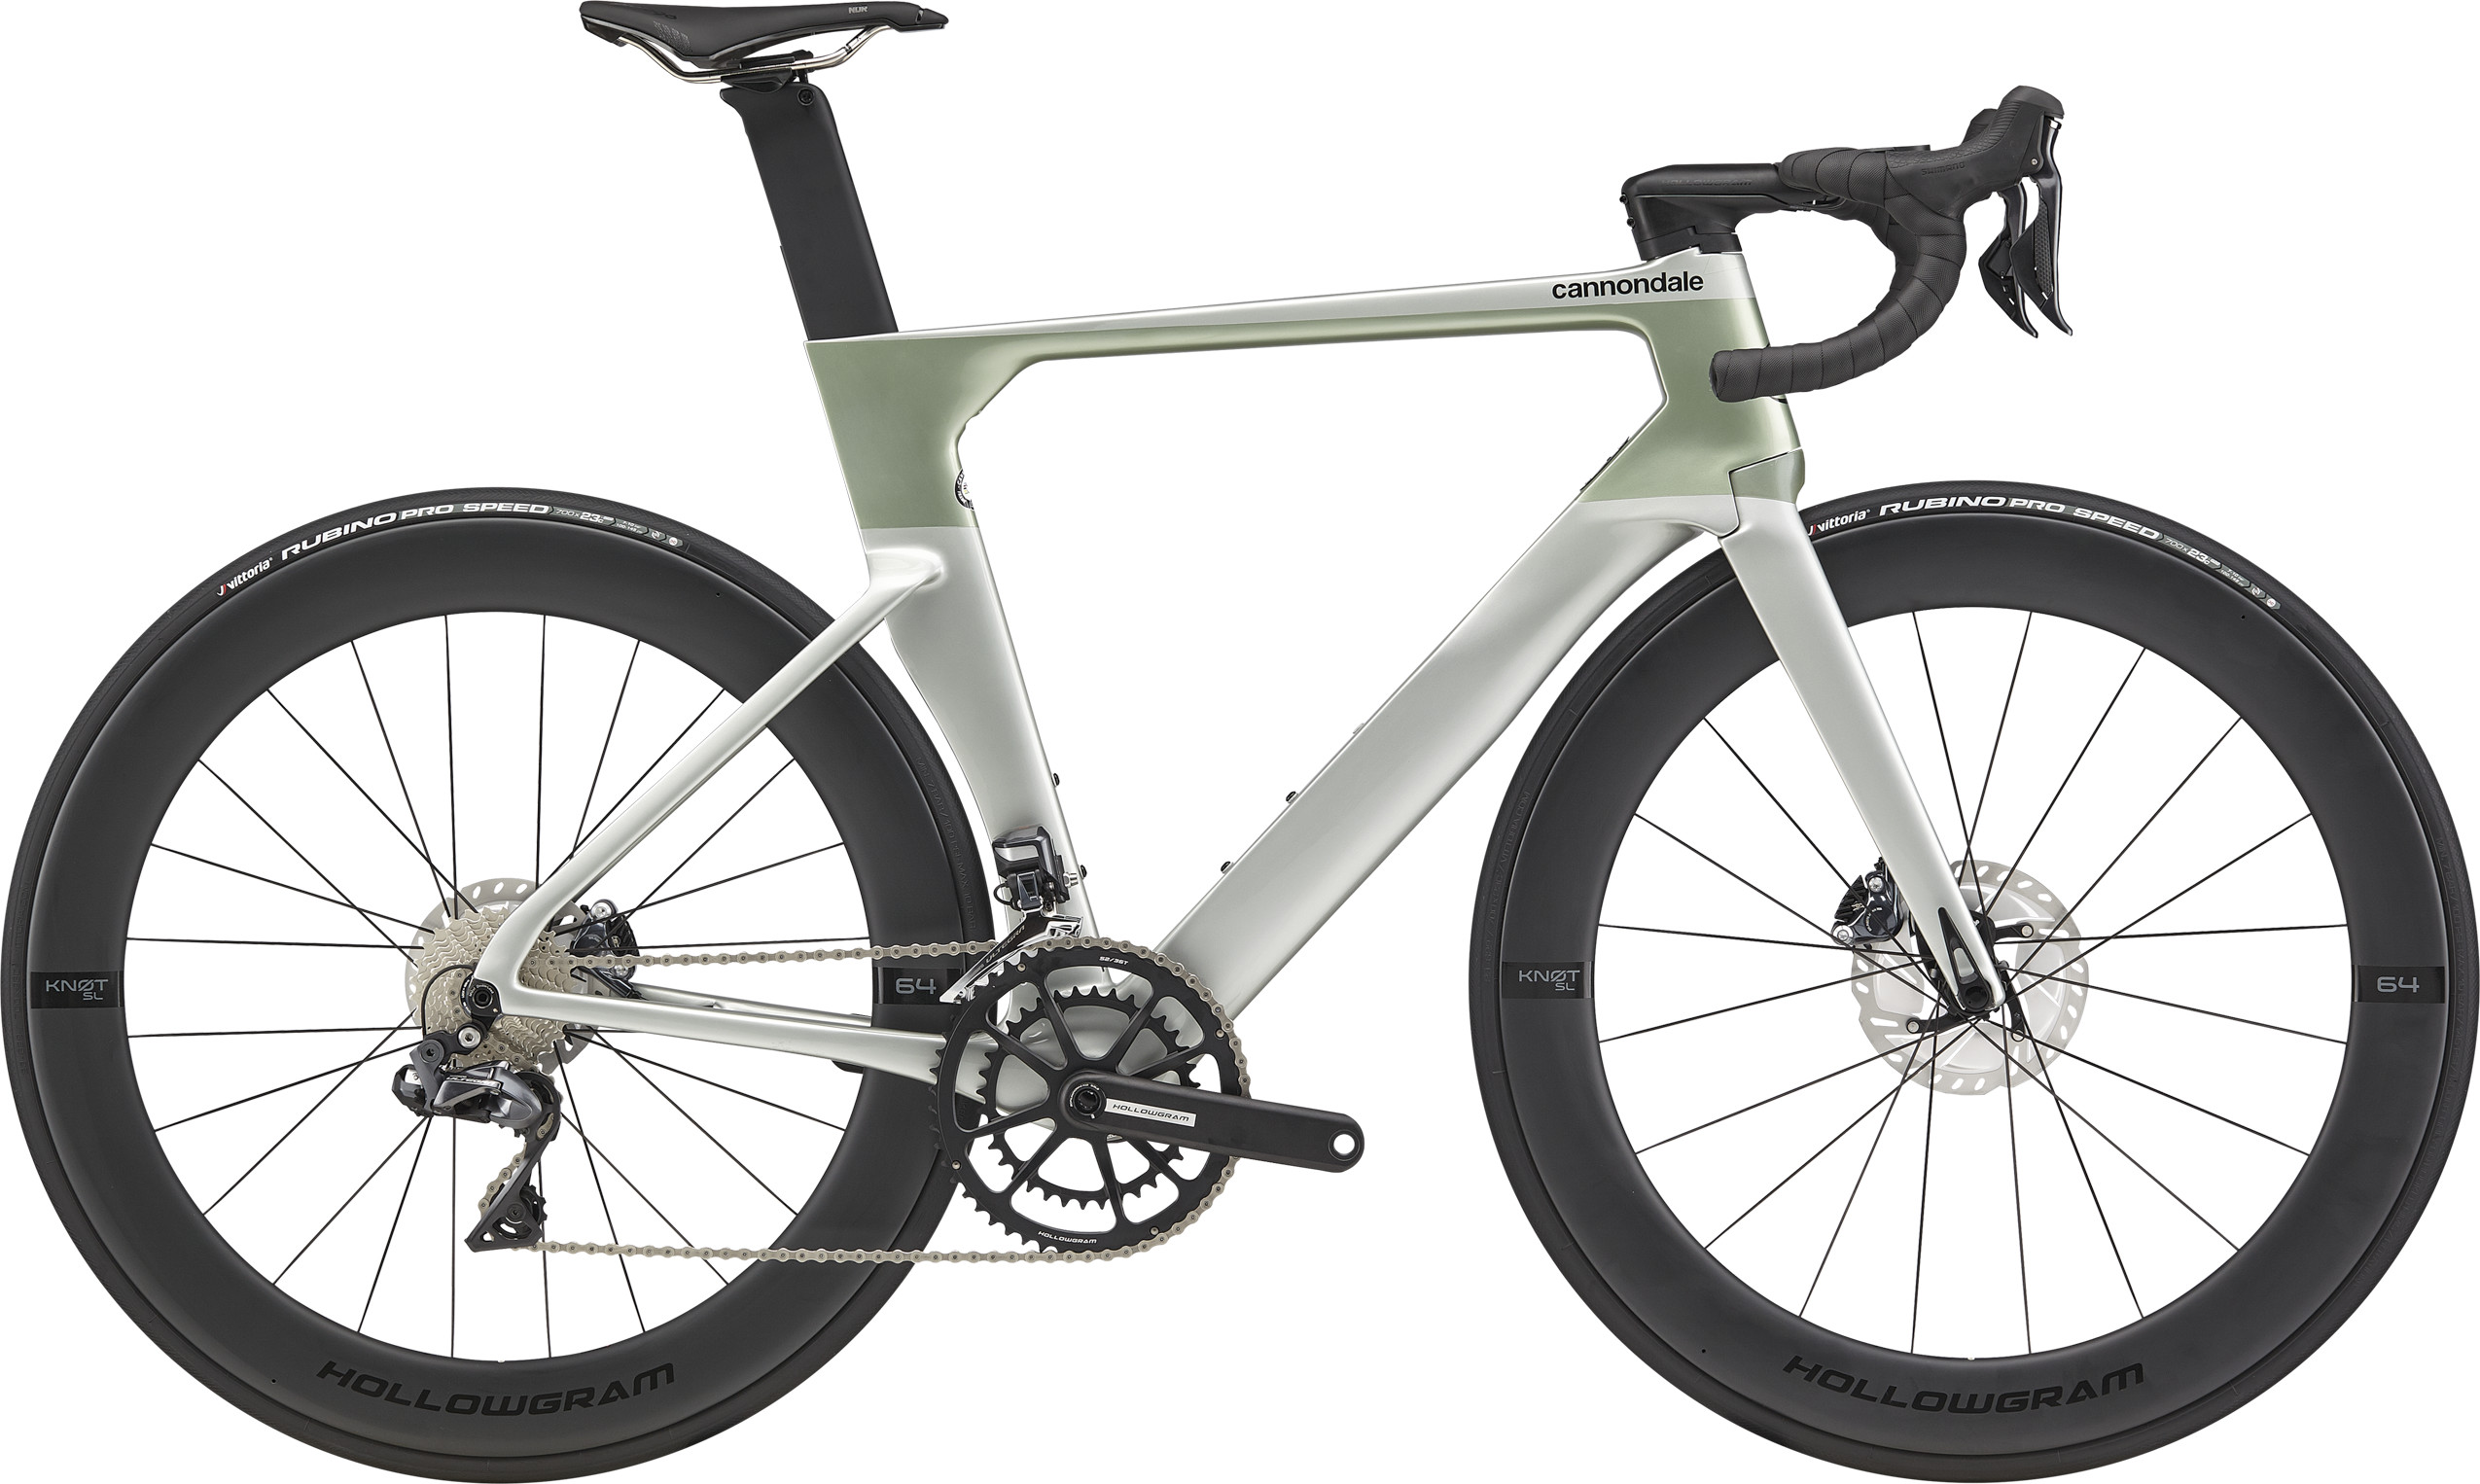 Cannondale 700 M SystemSix Crb Ult Di2